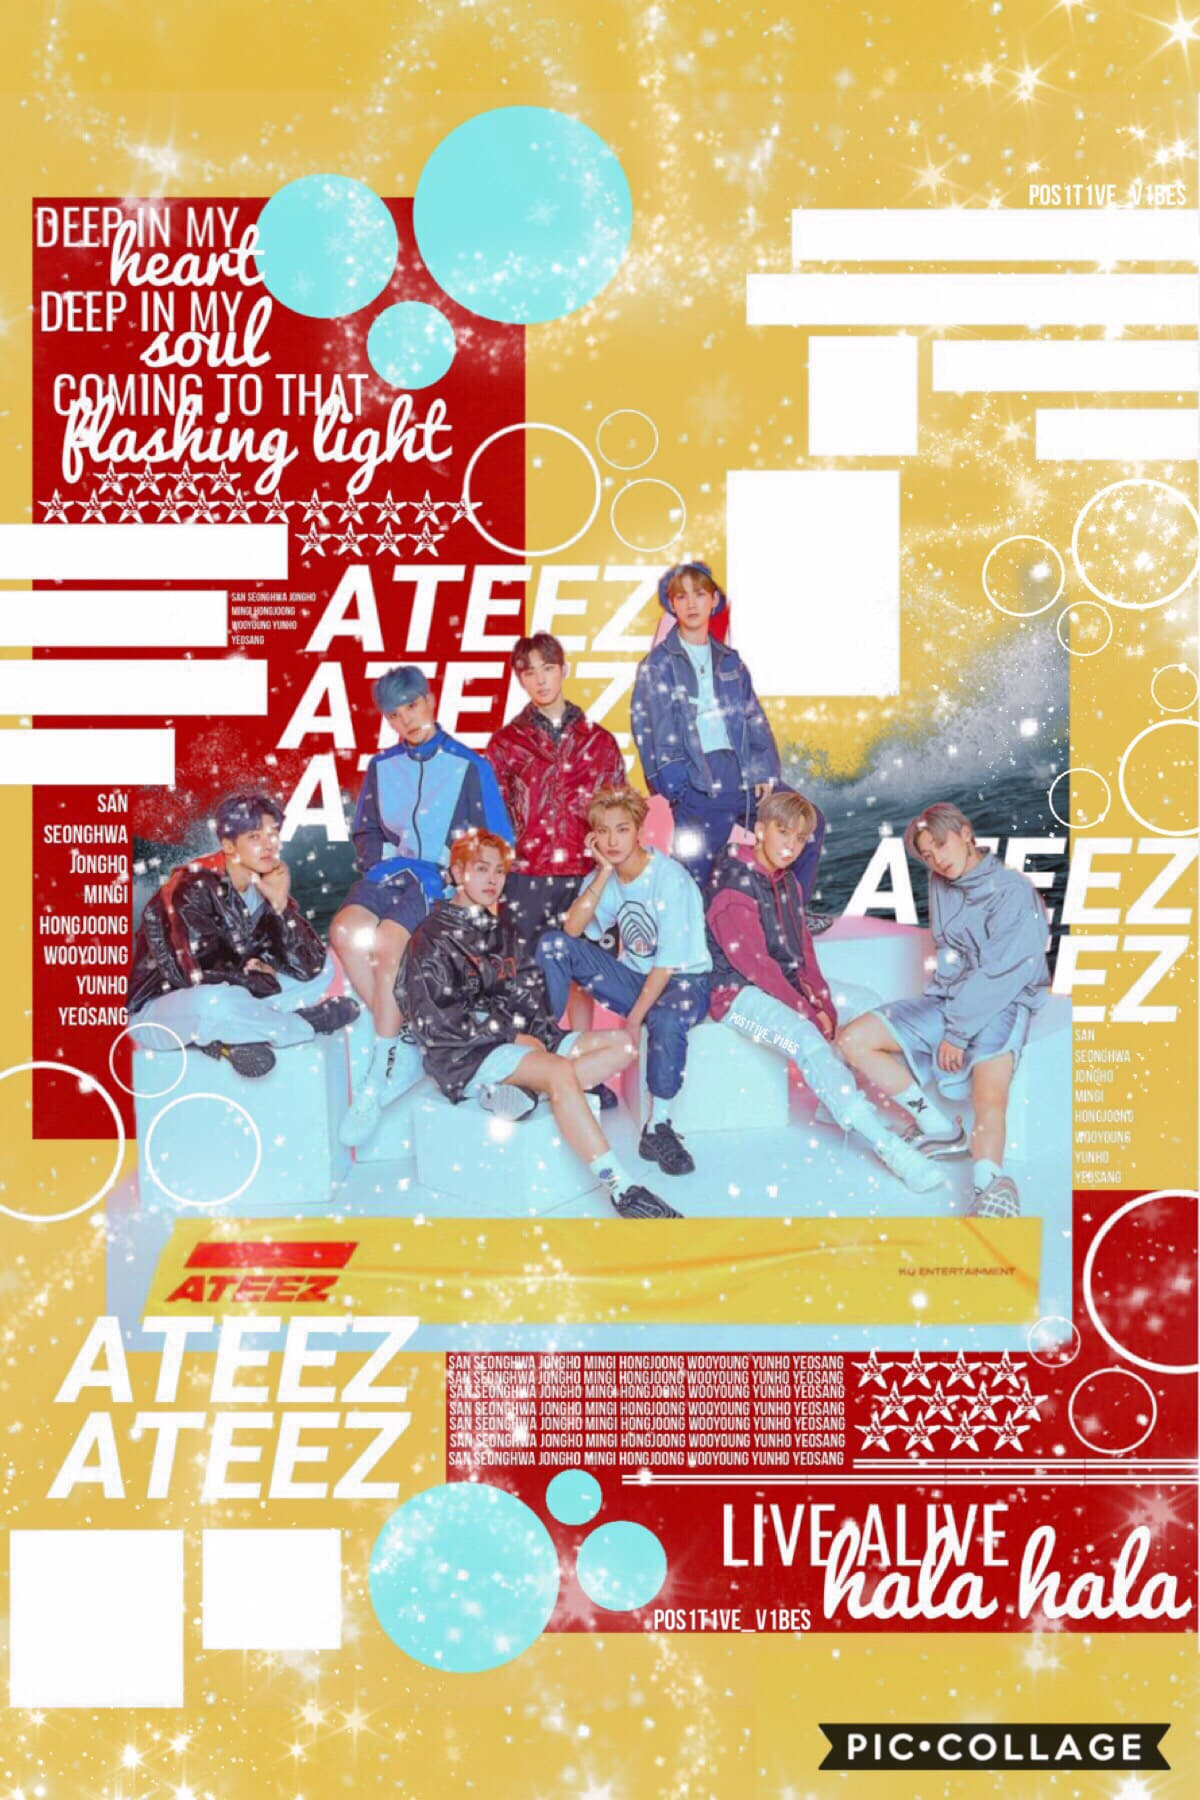 🌙aH i'm so obsesseD with ateez :) go check them out lol🌙 i'm sorry for being inactive :( schools been quite stressful🌙on a side note, my english class is better than expected ! but i've gotten a few projects already🌙 #PCONLY #ATEEZ #INACTIVE:( #SCHOOL #EN